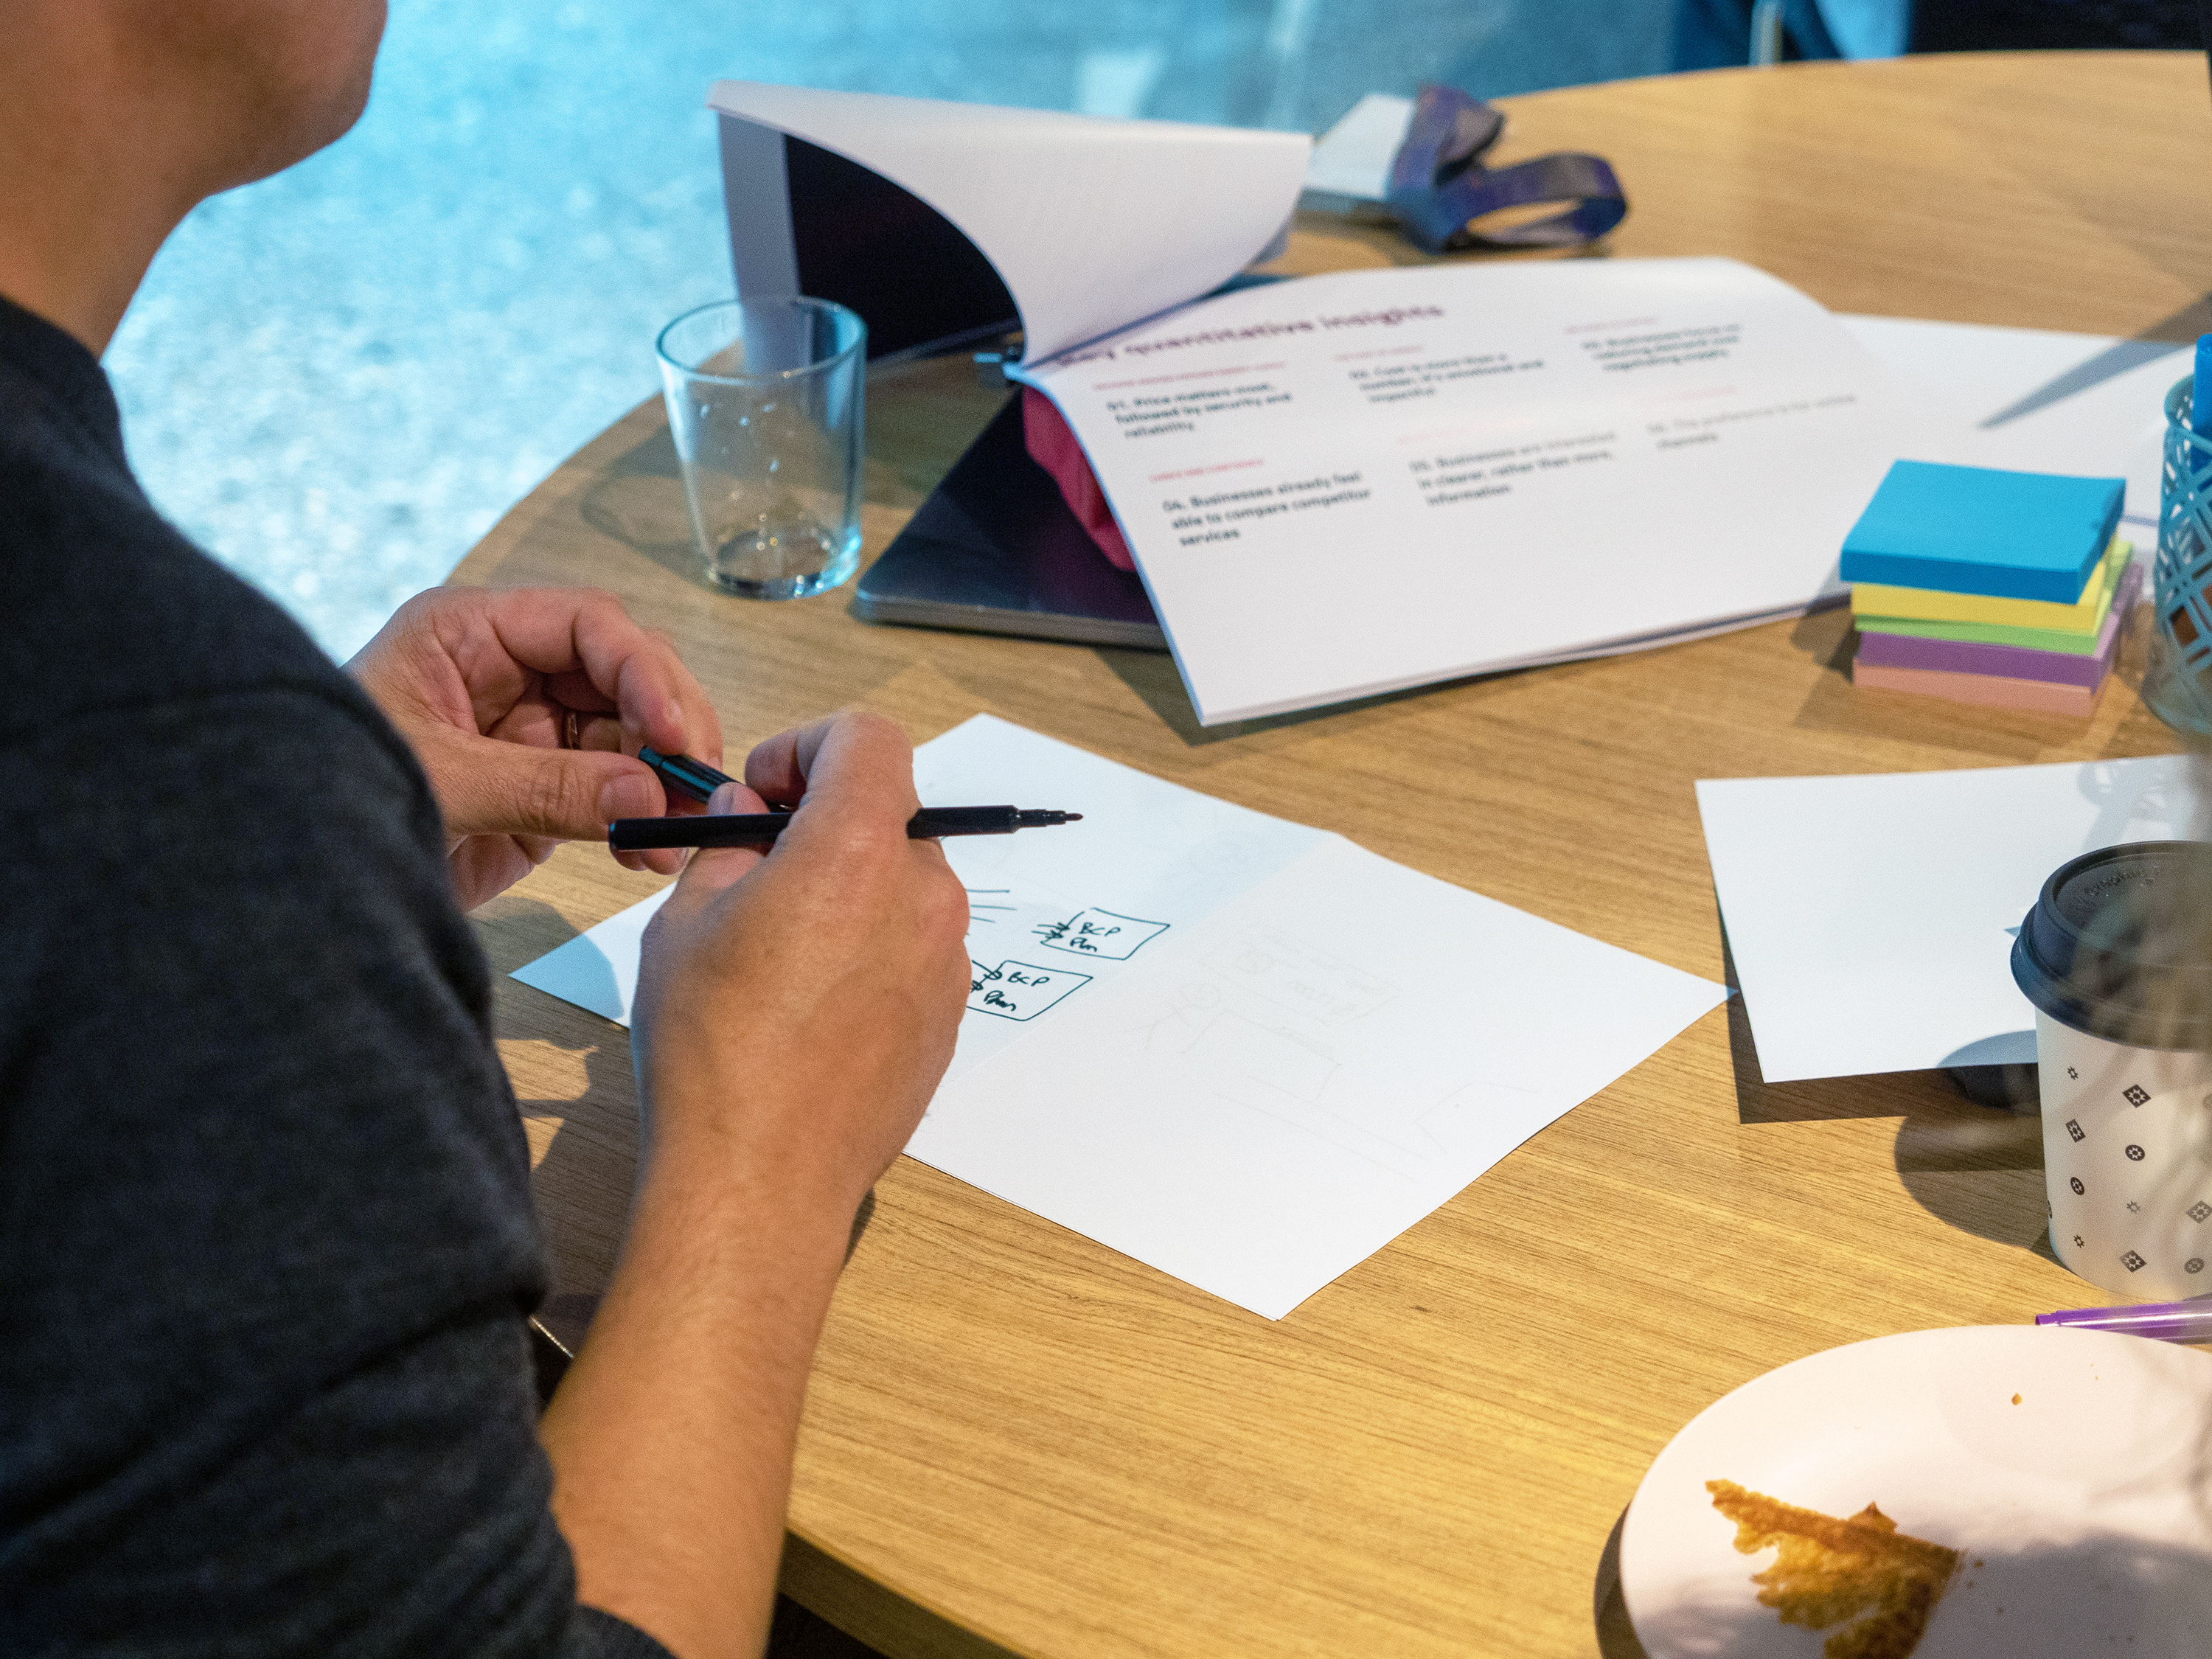 Design thinking to accelerate strategic growth